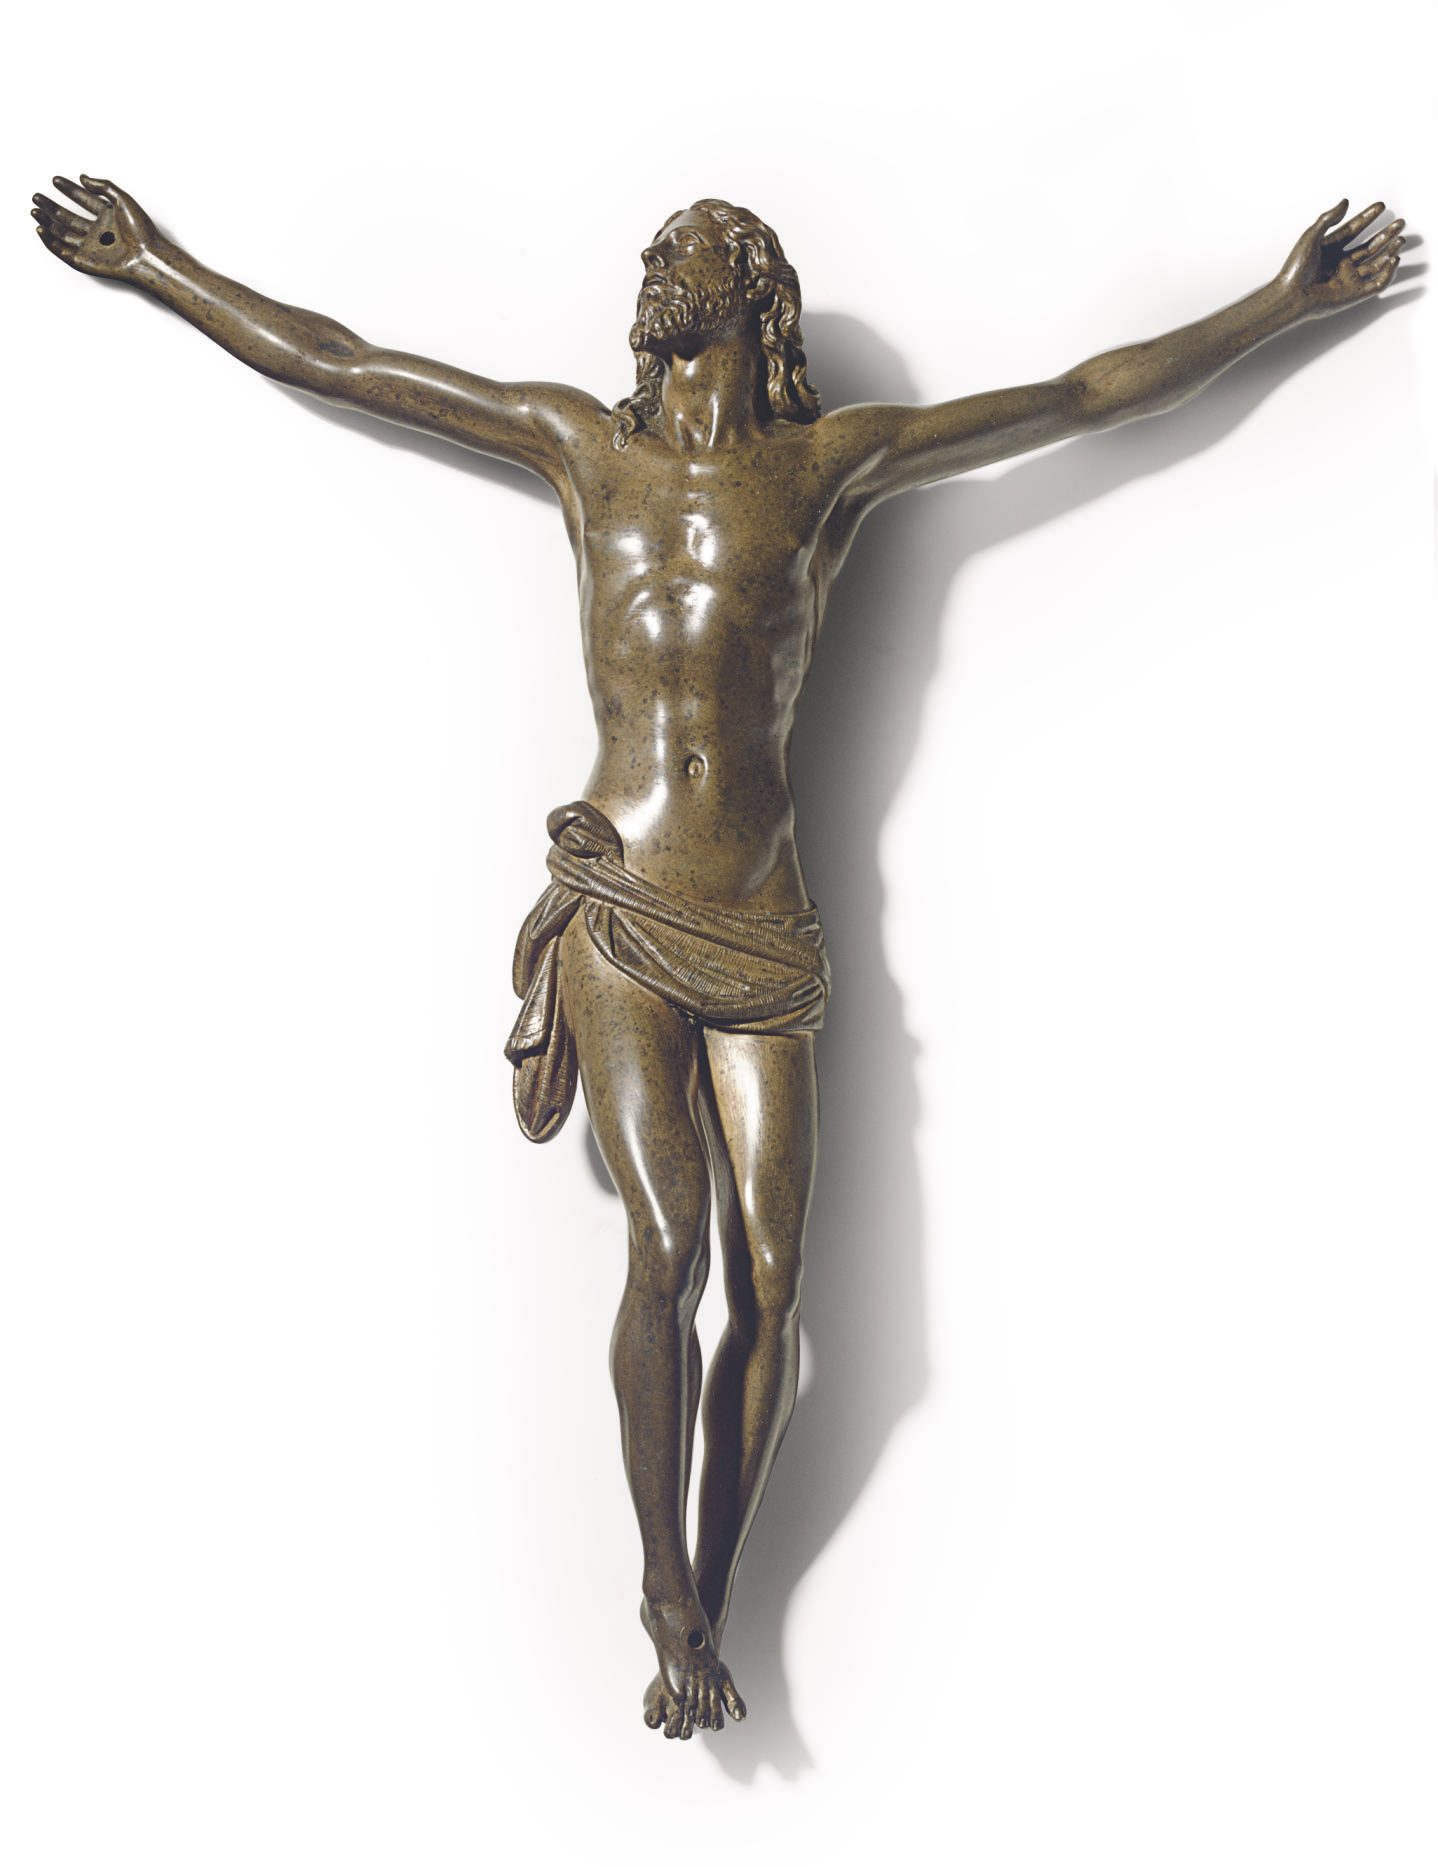 A BRONZE FIGURE OF THE CRISTO VIVO